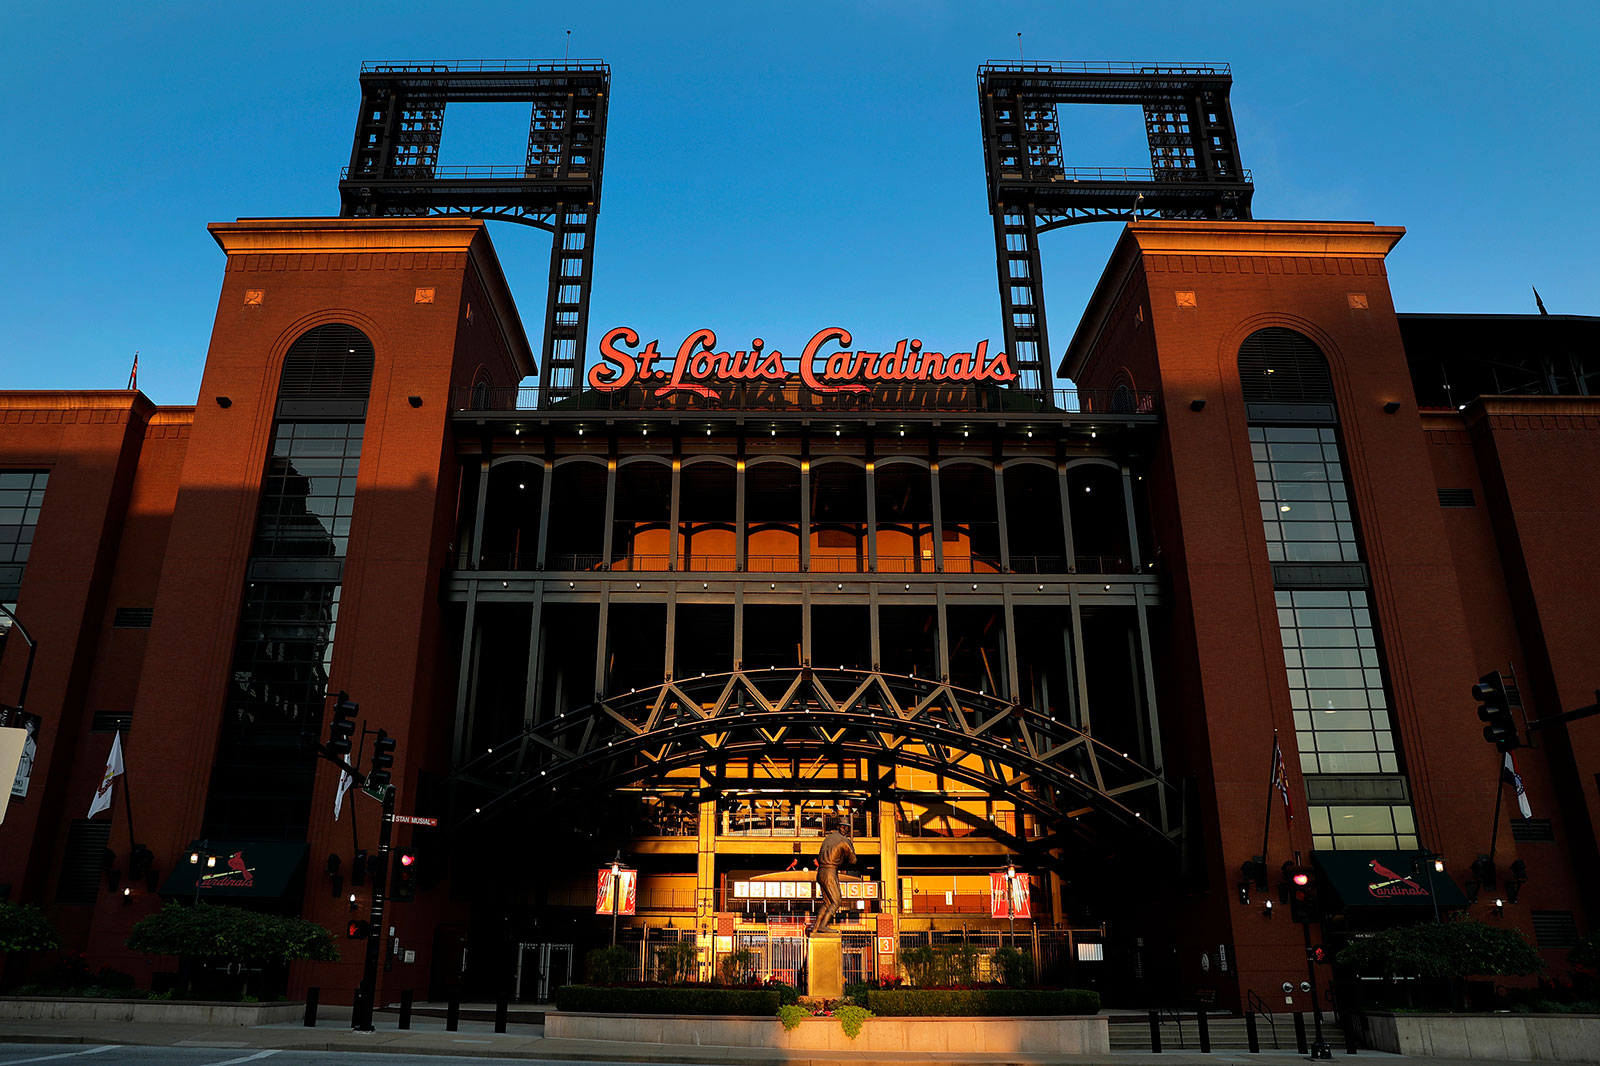 The exterior of Busch Stadium in St. Louis on Friday, August 7.